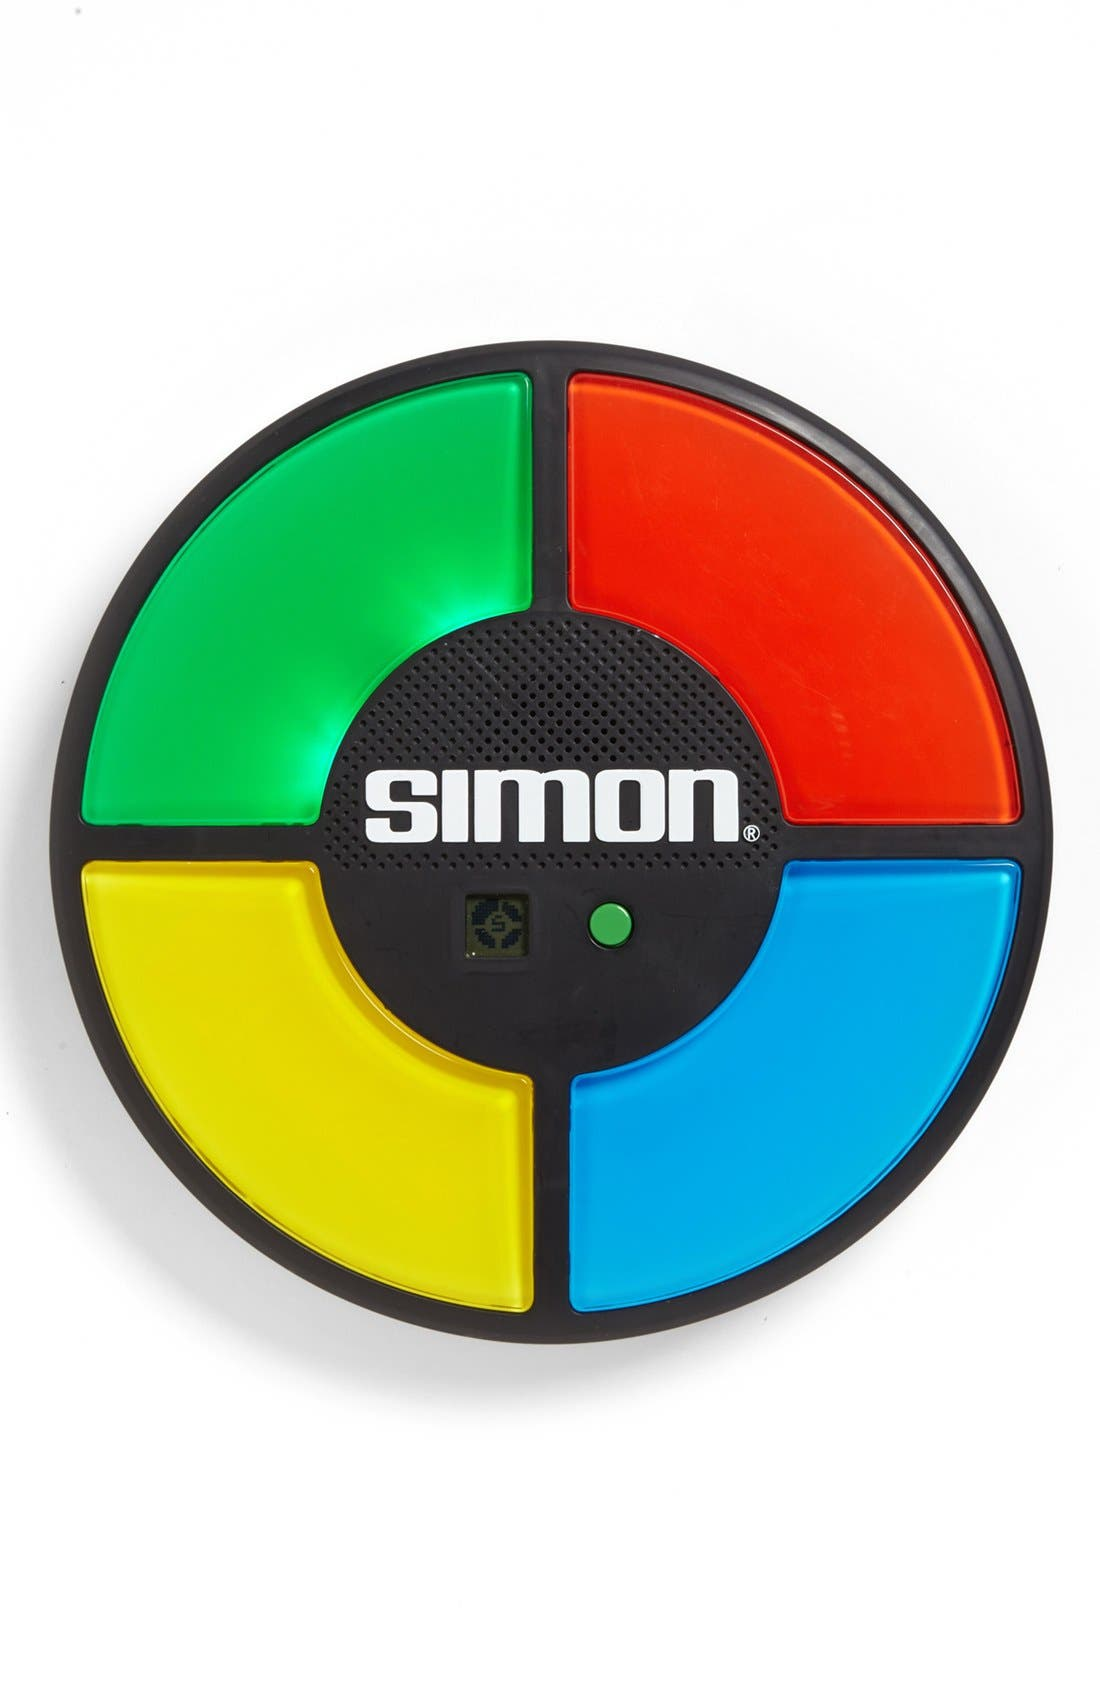 Alternate Image 1 Selected - Schylling 'Simon' Memory Game